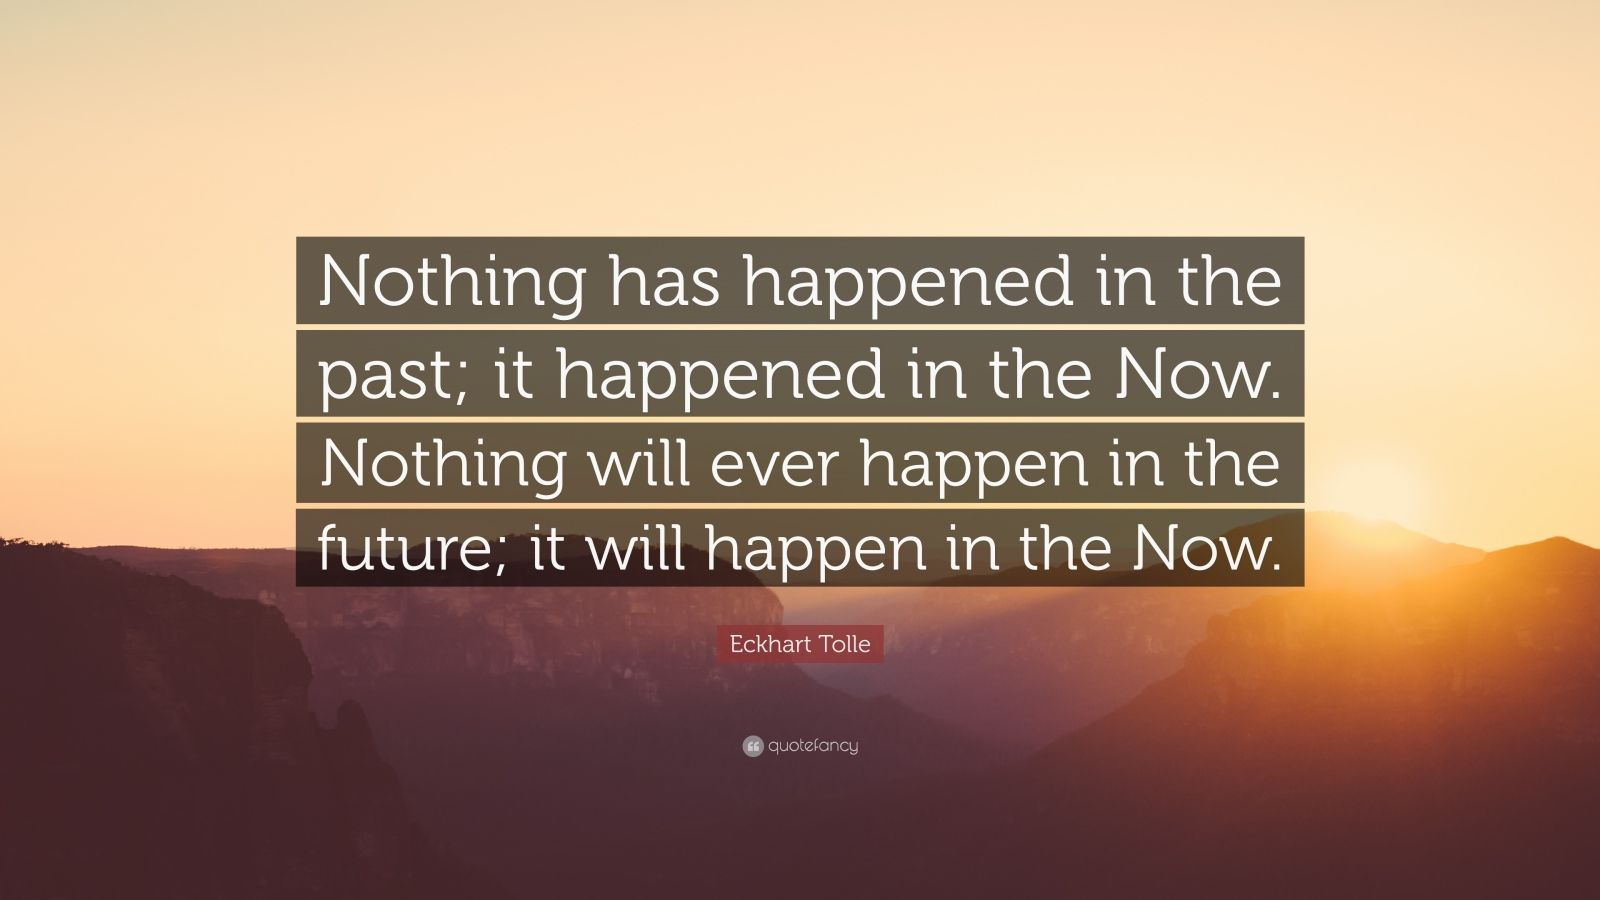 """Eckhart Tolle Quote: """"Nothing has happened in the past; it happened in the Now. Nothing will ever happen in the future; it will happen in the Now."""""""